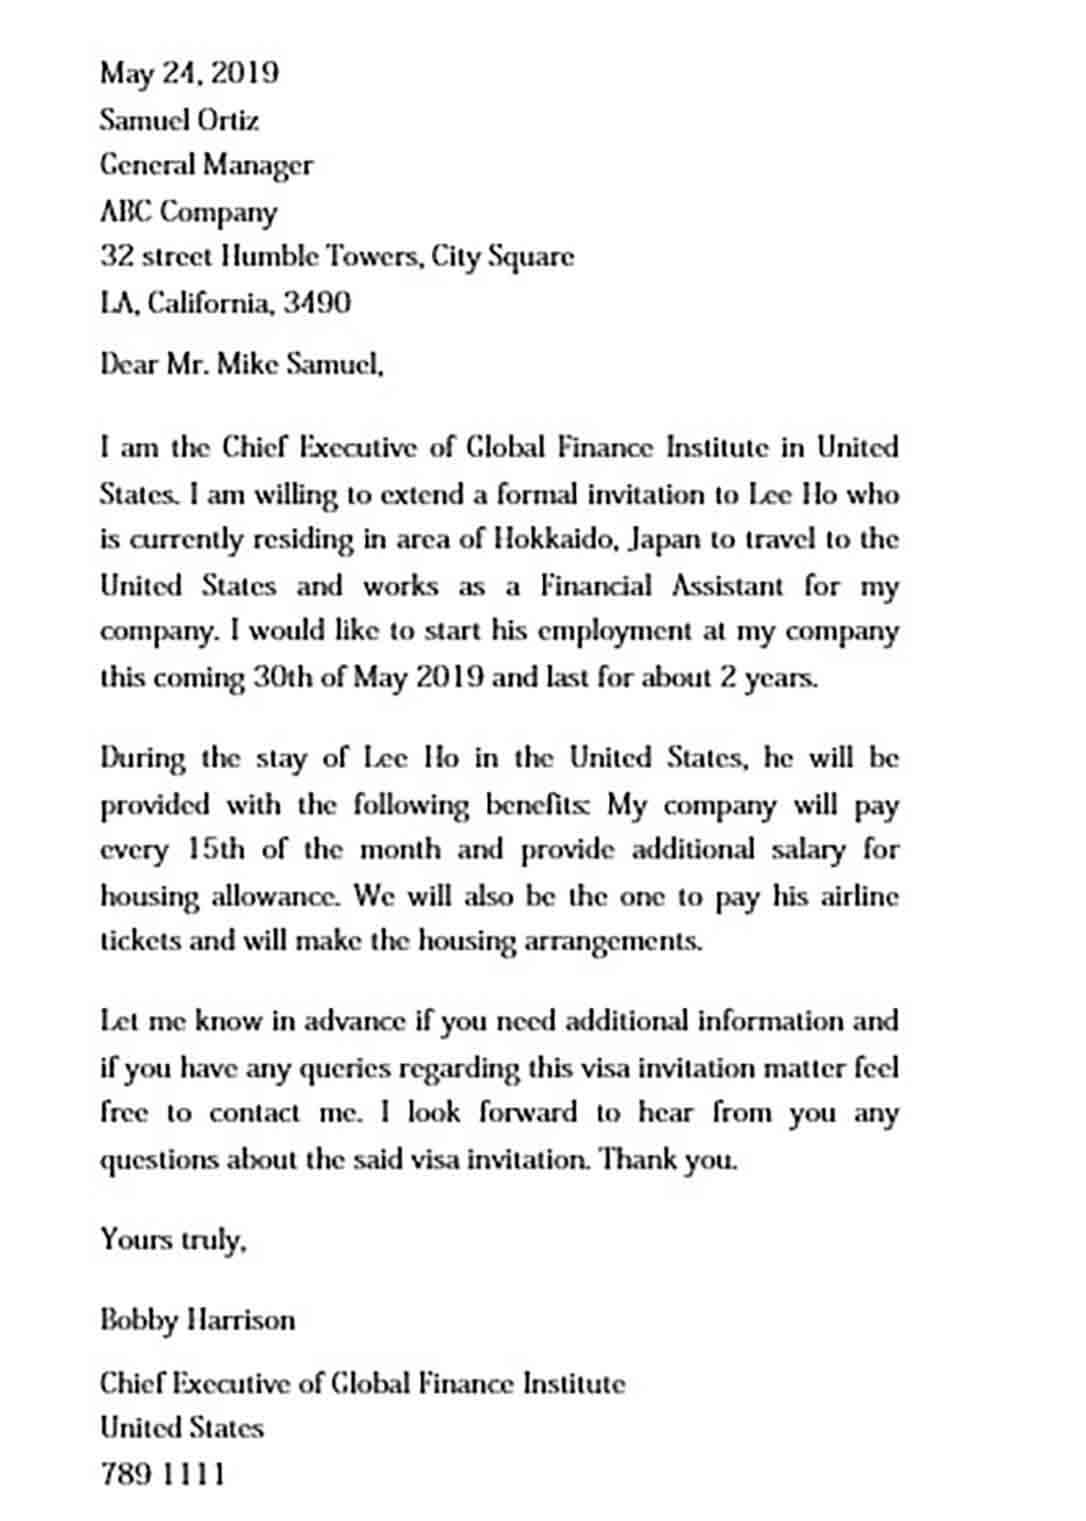 Invitation Letter for US Business Visa